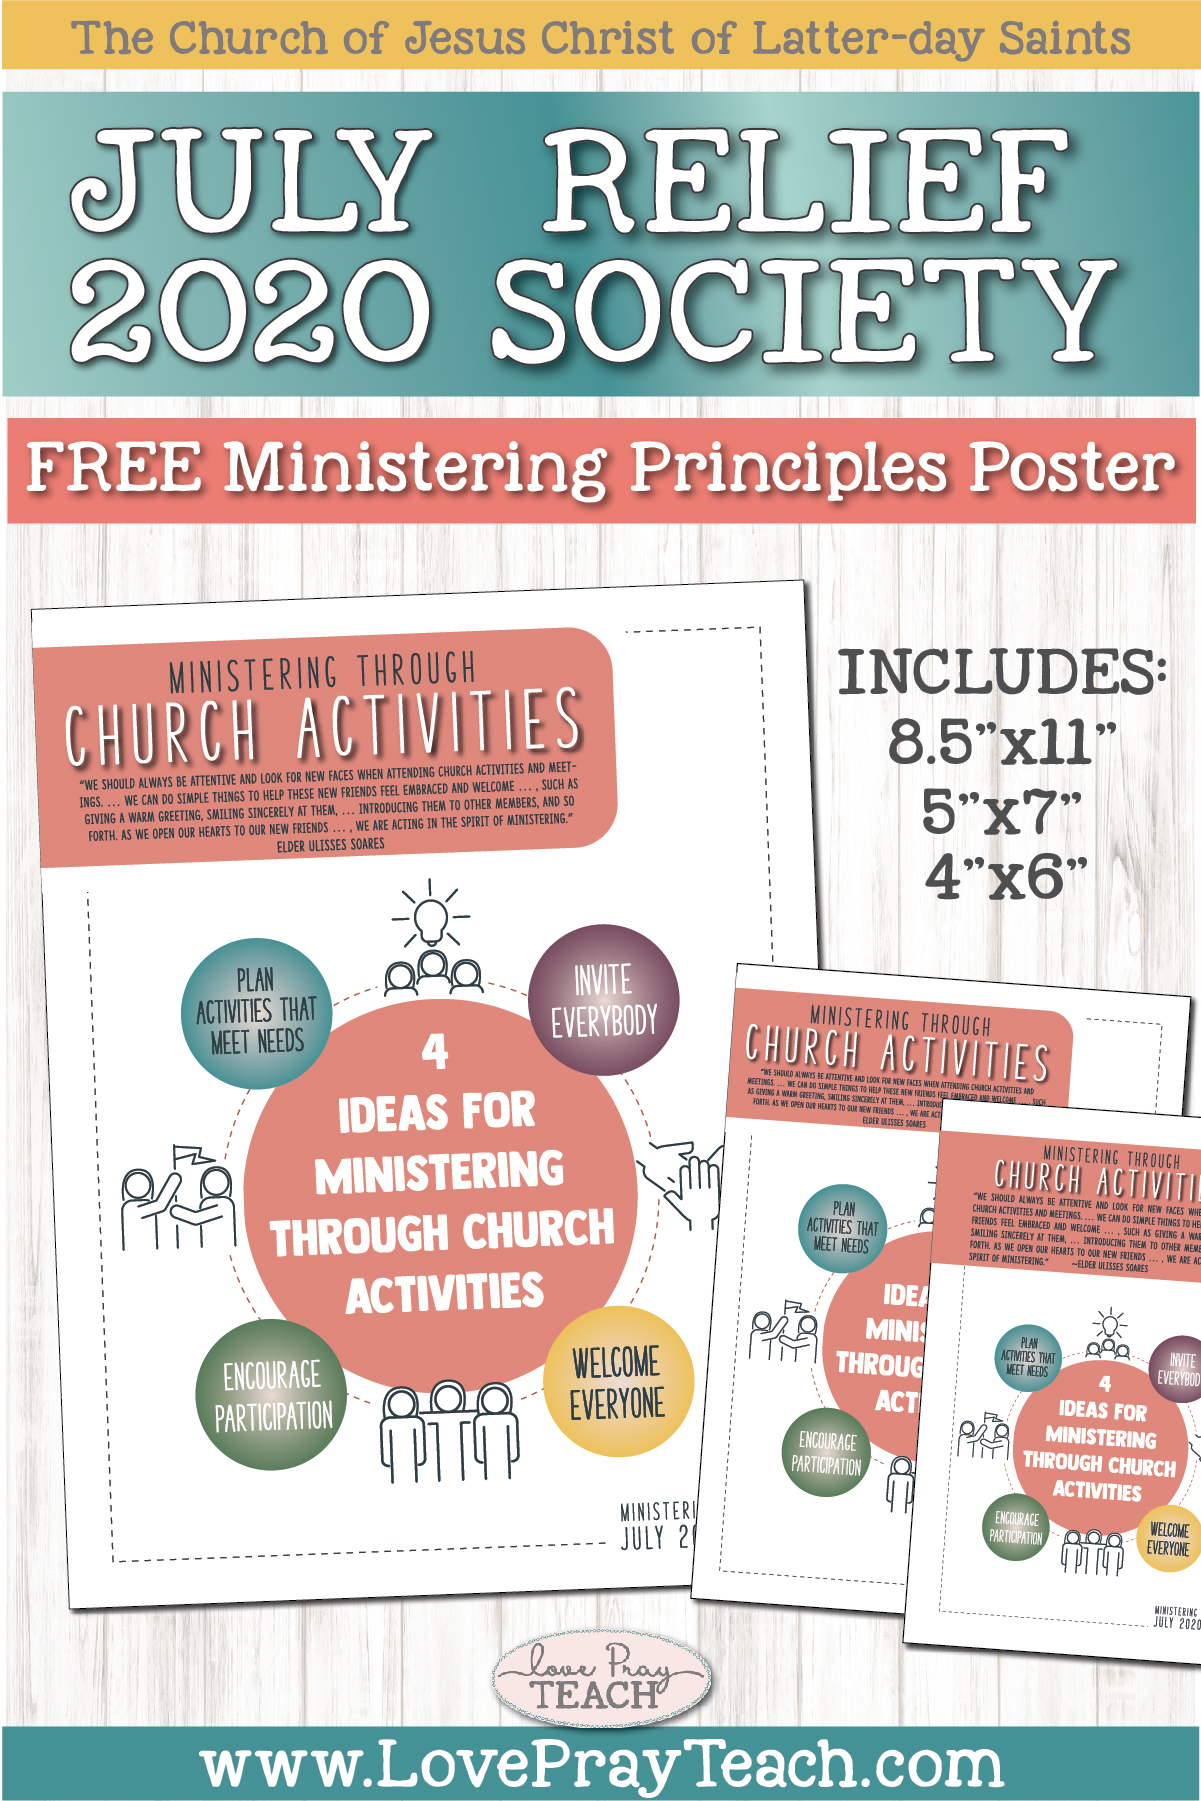 July 2020 Free Ministering Principles Poster and Handout for Relief Society www.LovePrayTeach.com